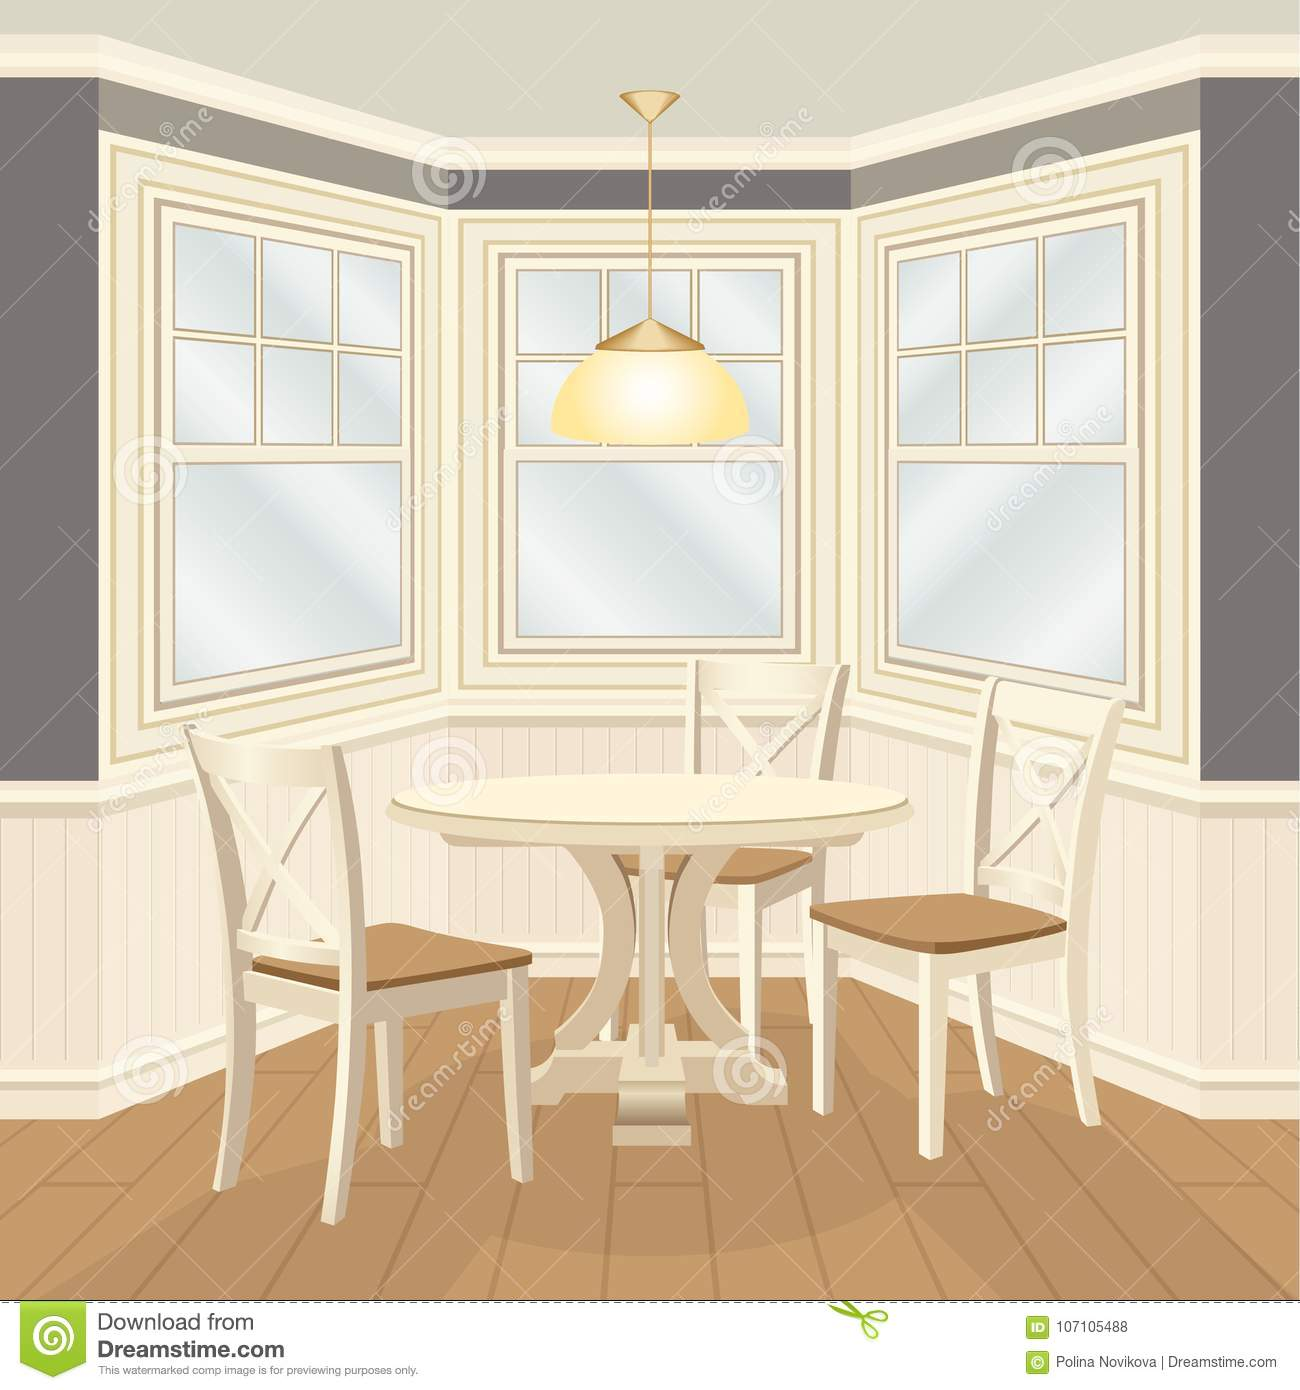 Luxury Kitchen Room Interior Bright Wooden Stock Vector: Chairs Cartoons, Illustrations & Vector Stock Images